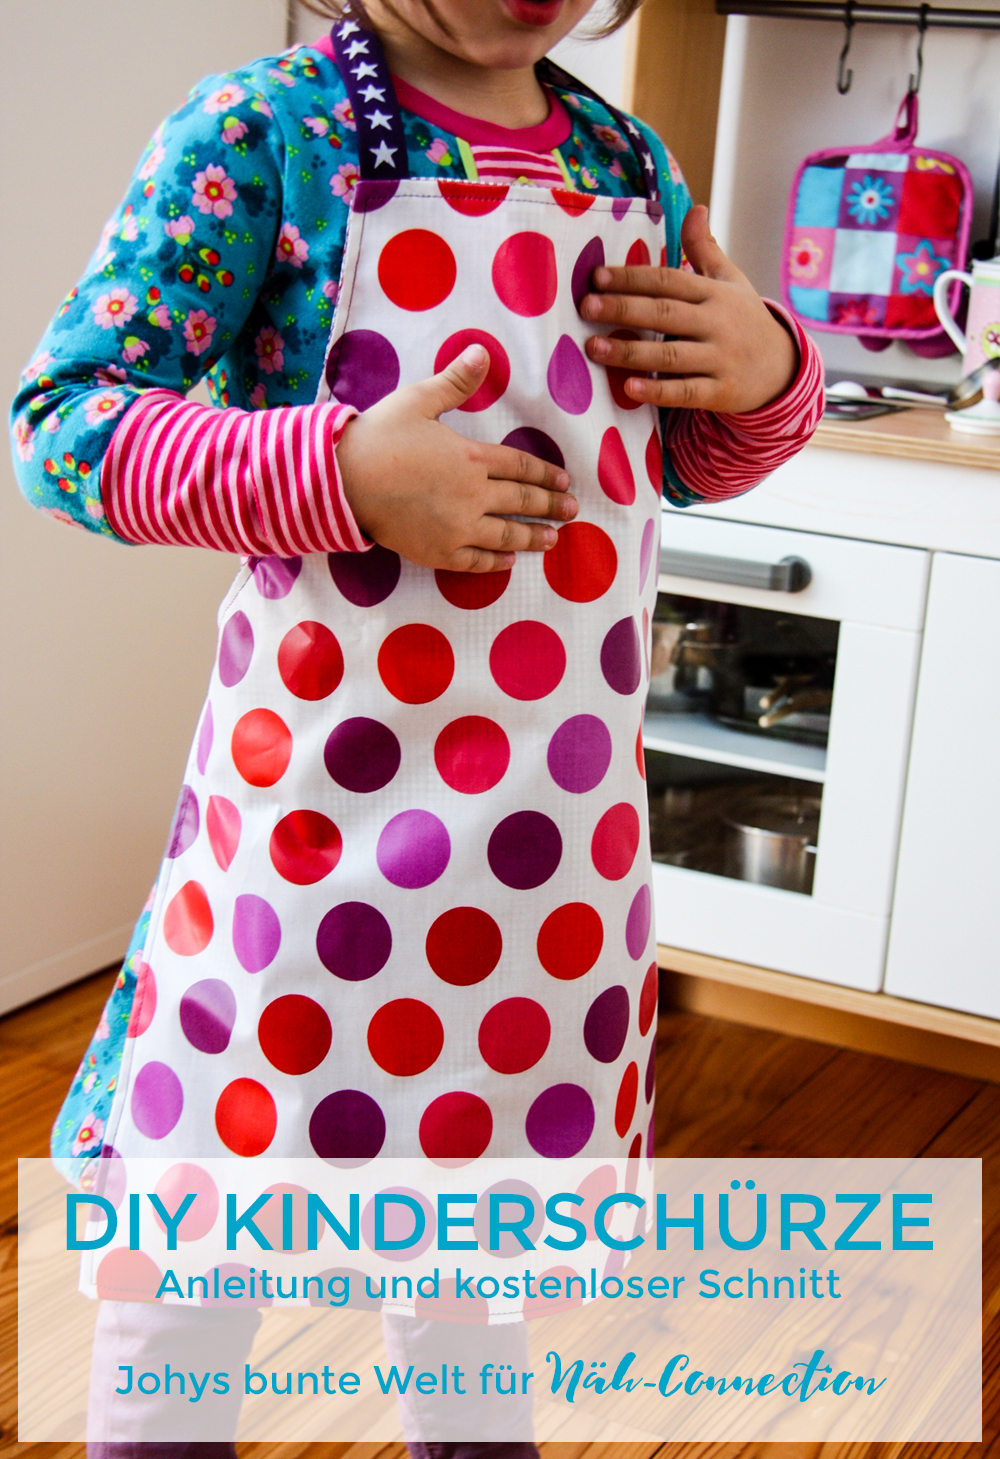 Diy Kinderschürze